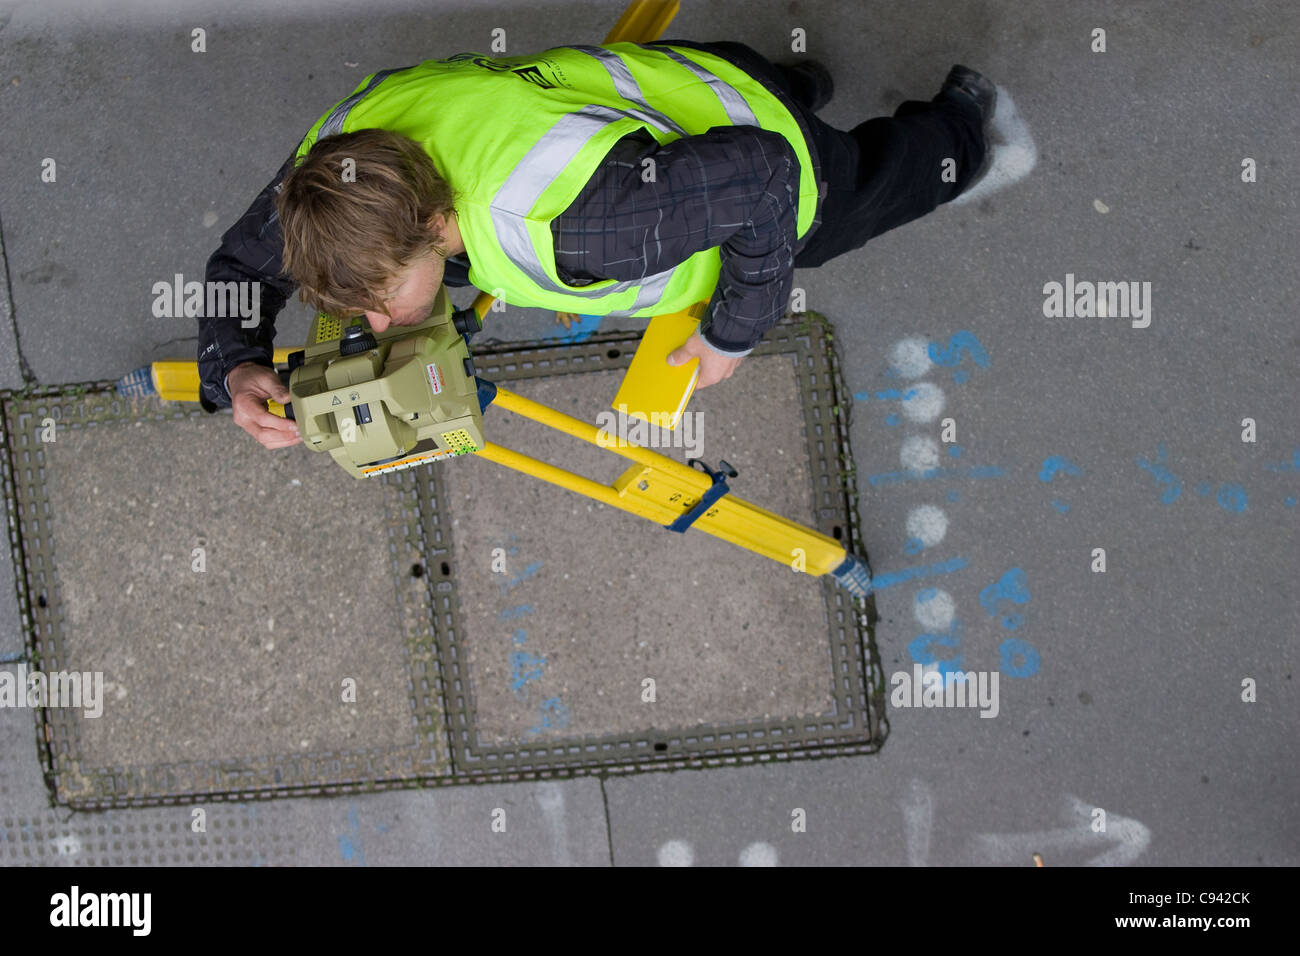 theodolite operator surveyor, surveying angles central london - Stock Image